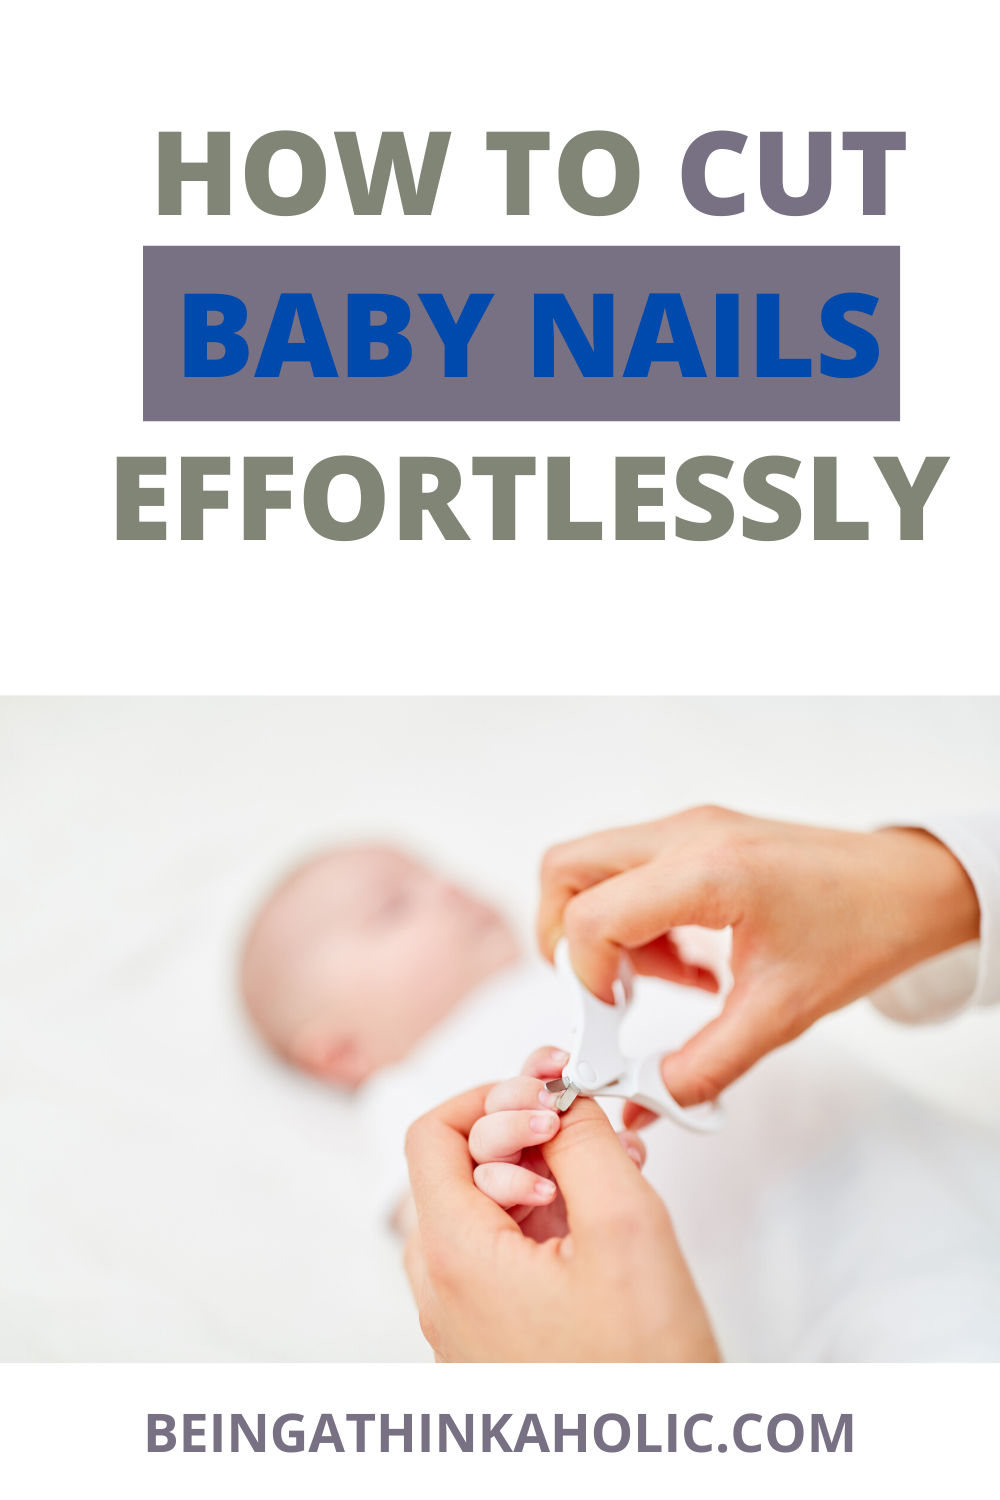 There is no doubt, cutting a baby's nails is very scary, and more so the first few times. All parents want to know the best way to cut baby nails. In this post, you will know how to cut baby nails. You will learn when to cut baby nails and the easy way to cut baby nails. #babynails #parentingtricks #howtocutbabynails